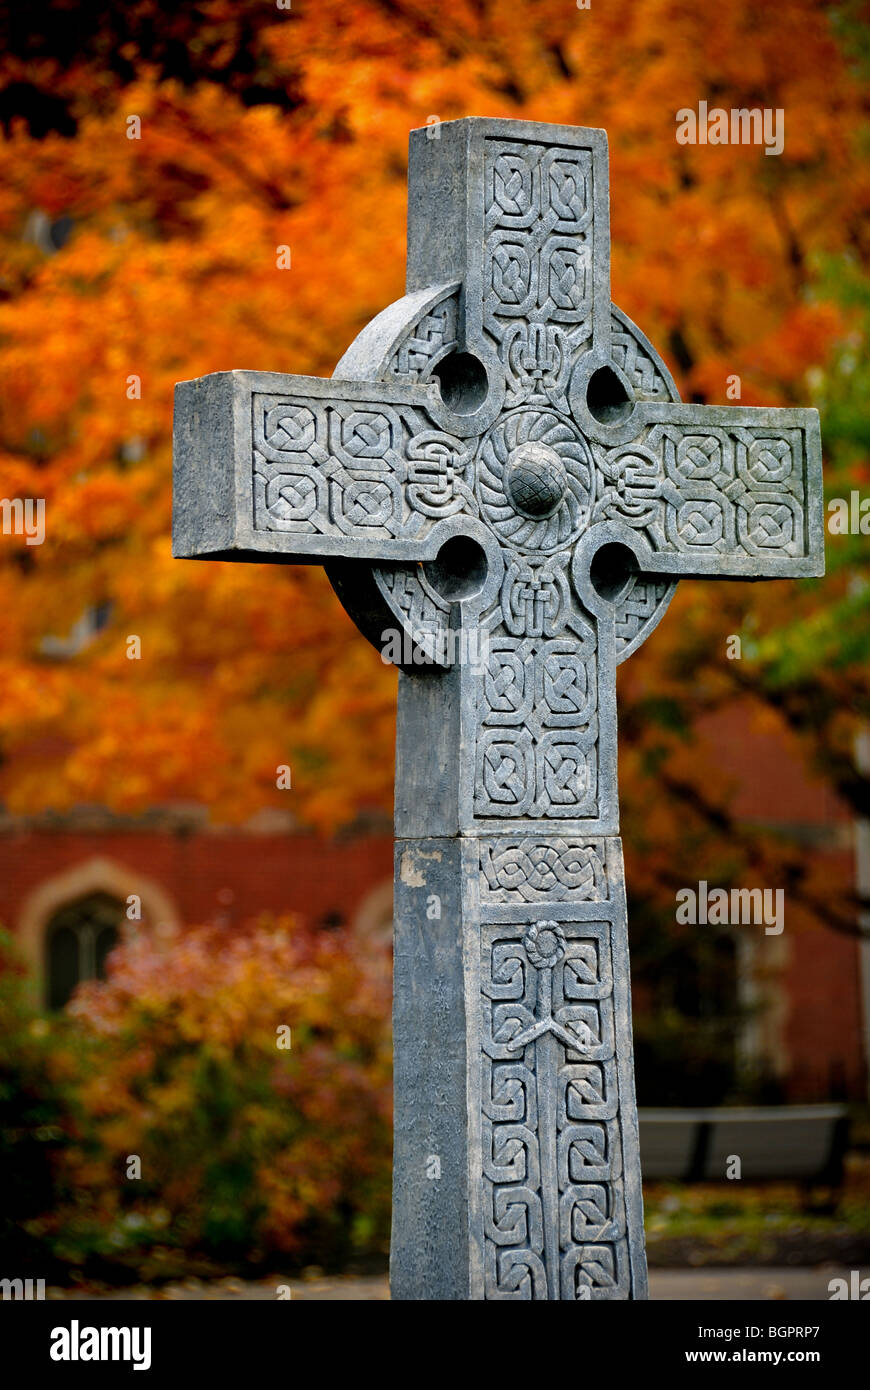 A monument of a cross on the campus of Duquesne University, Pittsburgh, Pennsylvania. - Stock Image